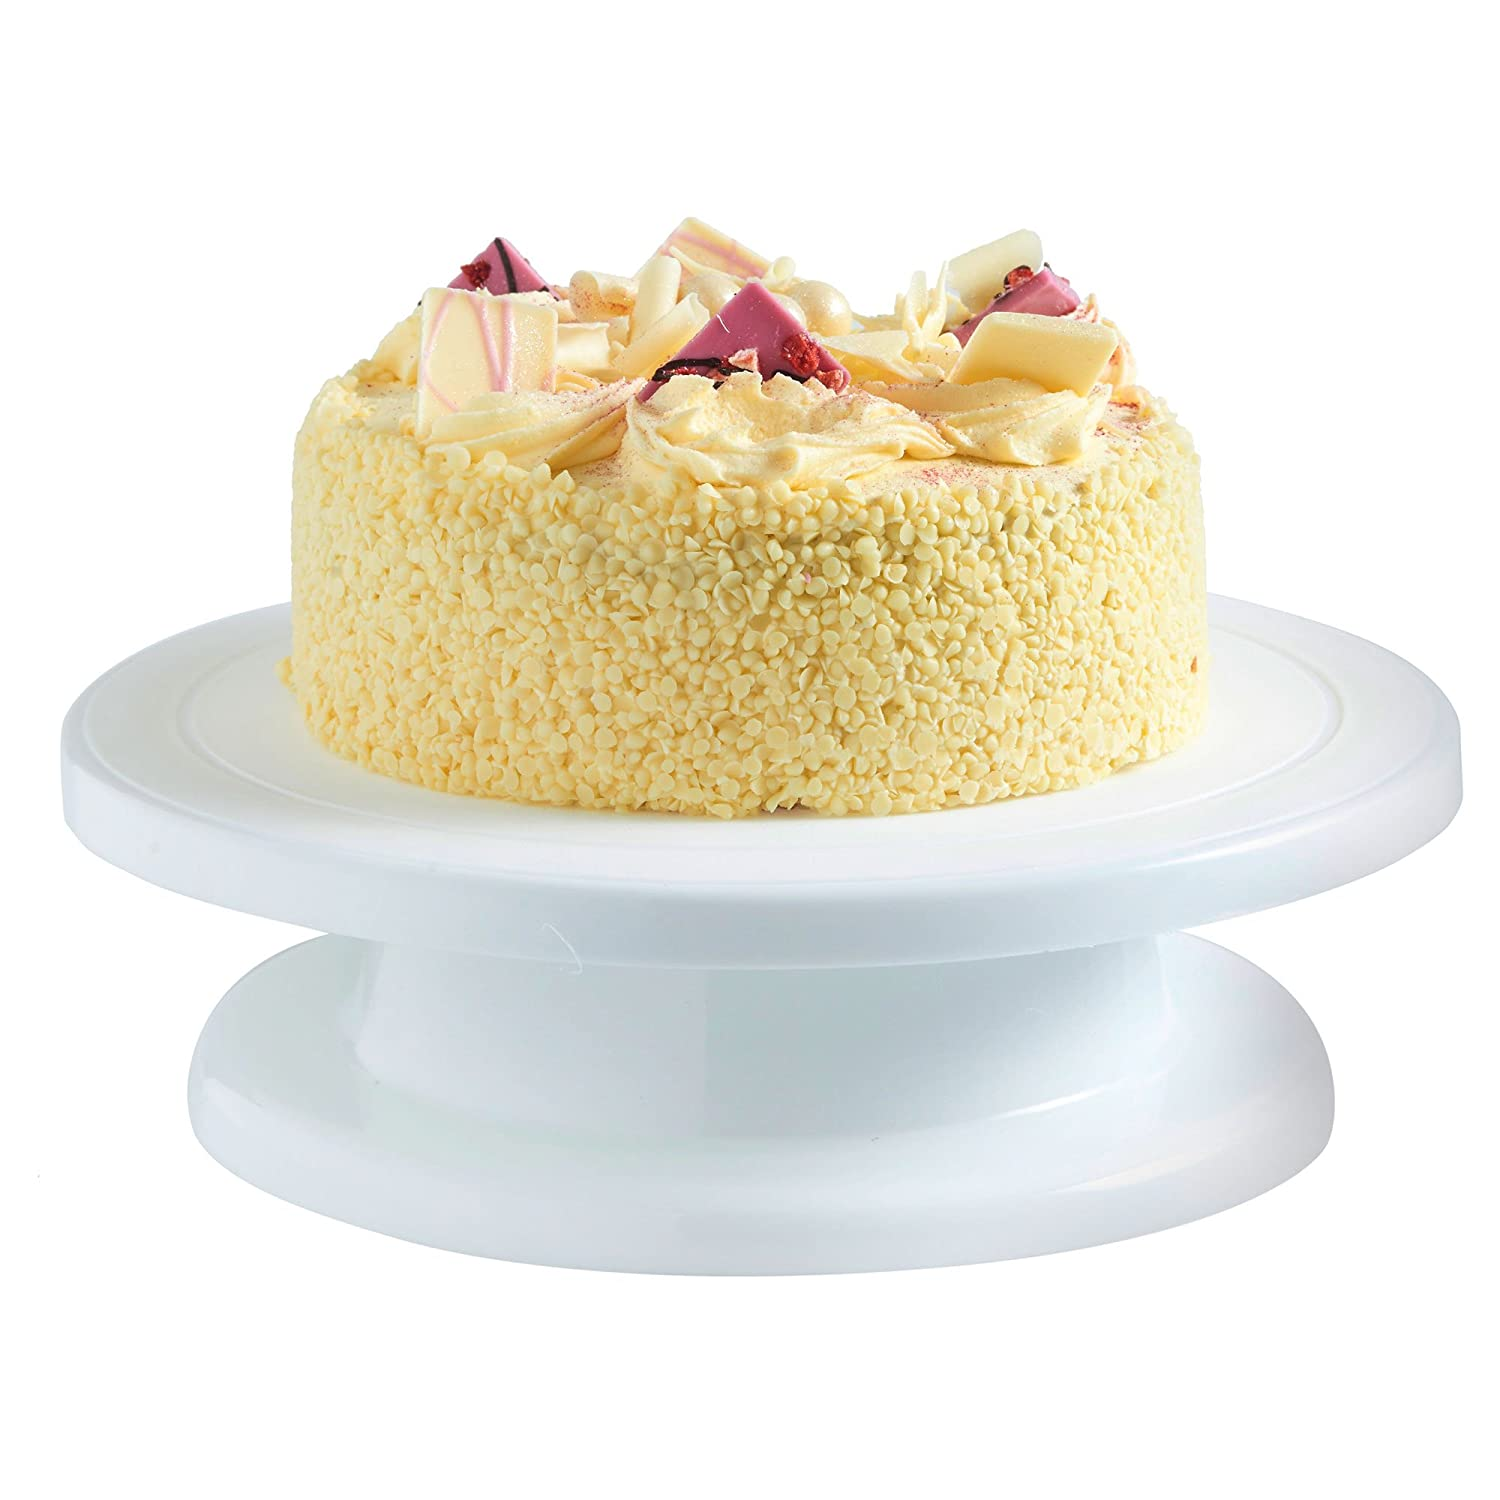 Cake Stands: Home & Kitchen: Amazon.co.uk